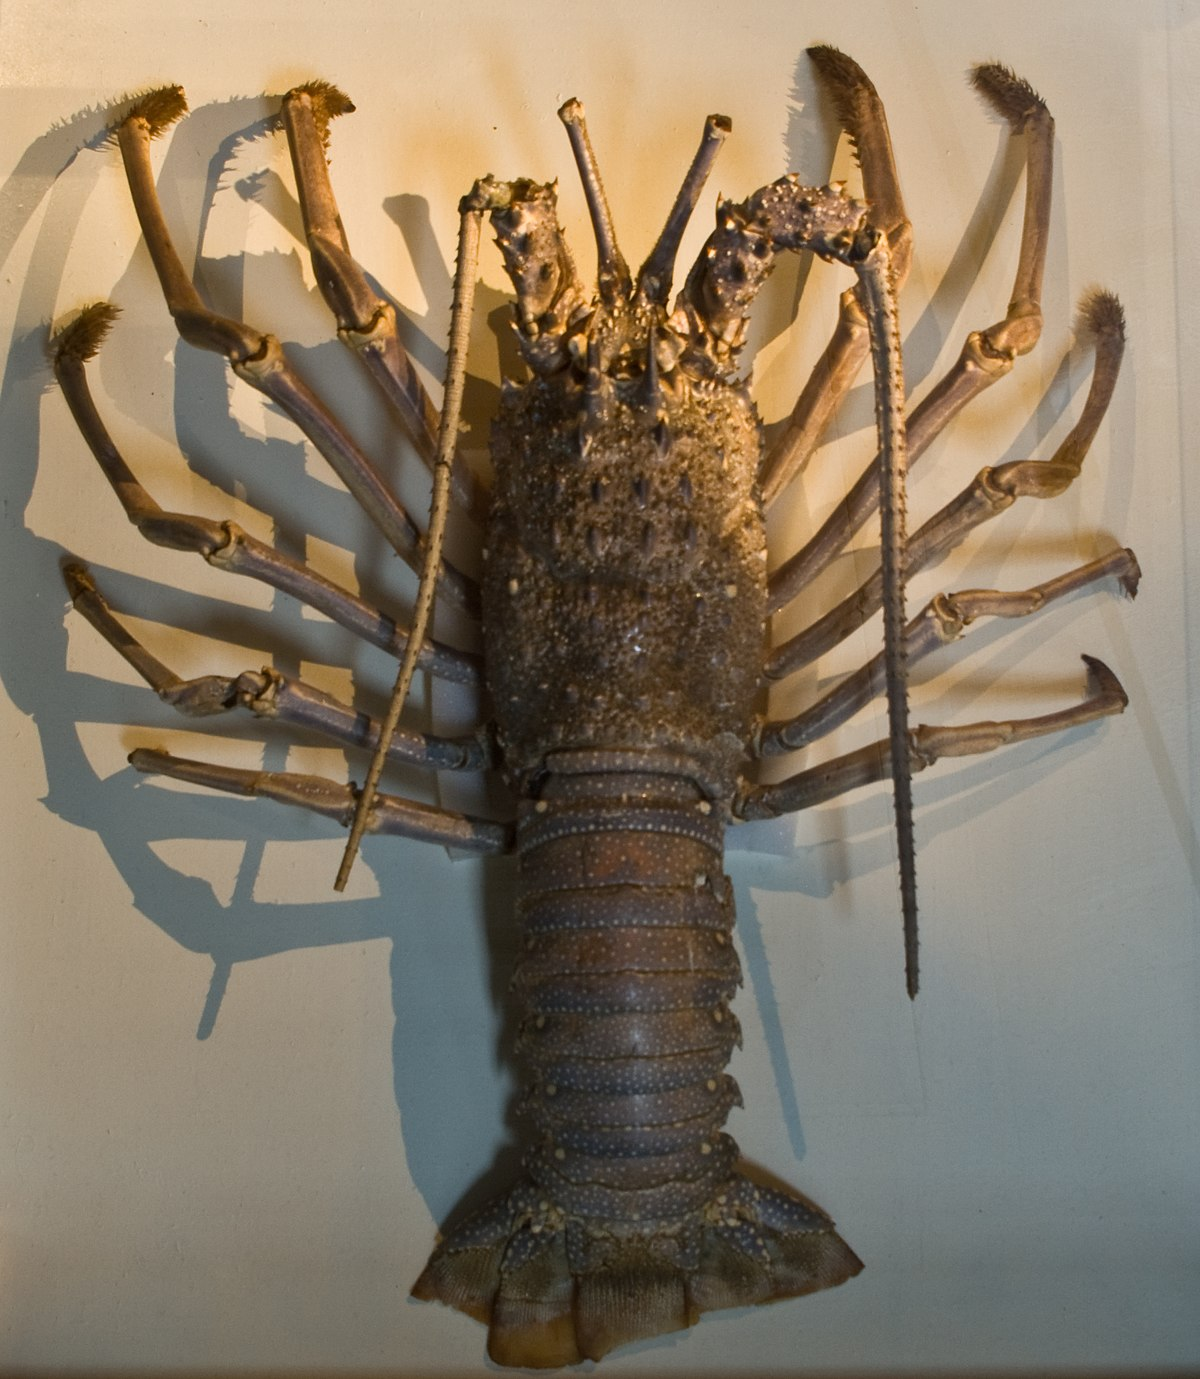 Japanese spiny lobster - Wikipedia